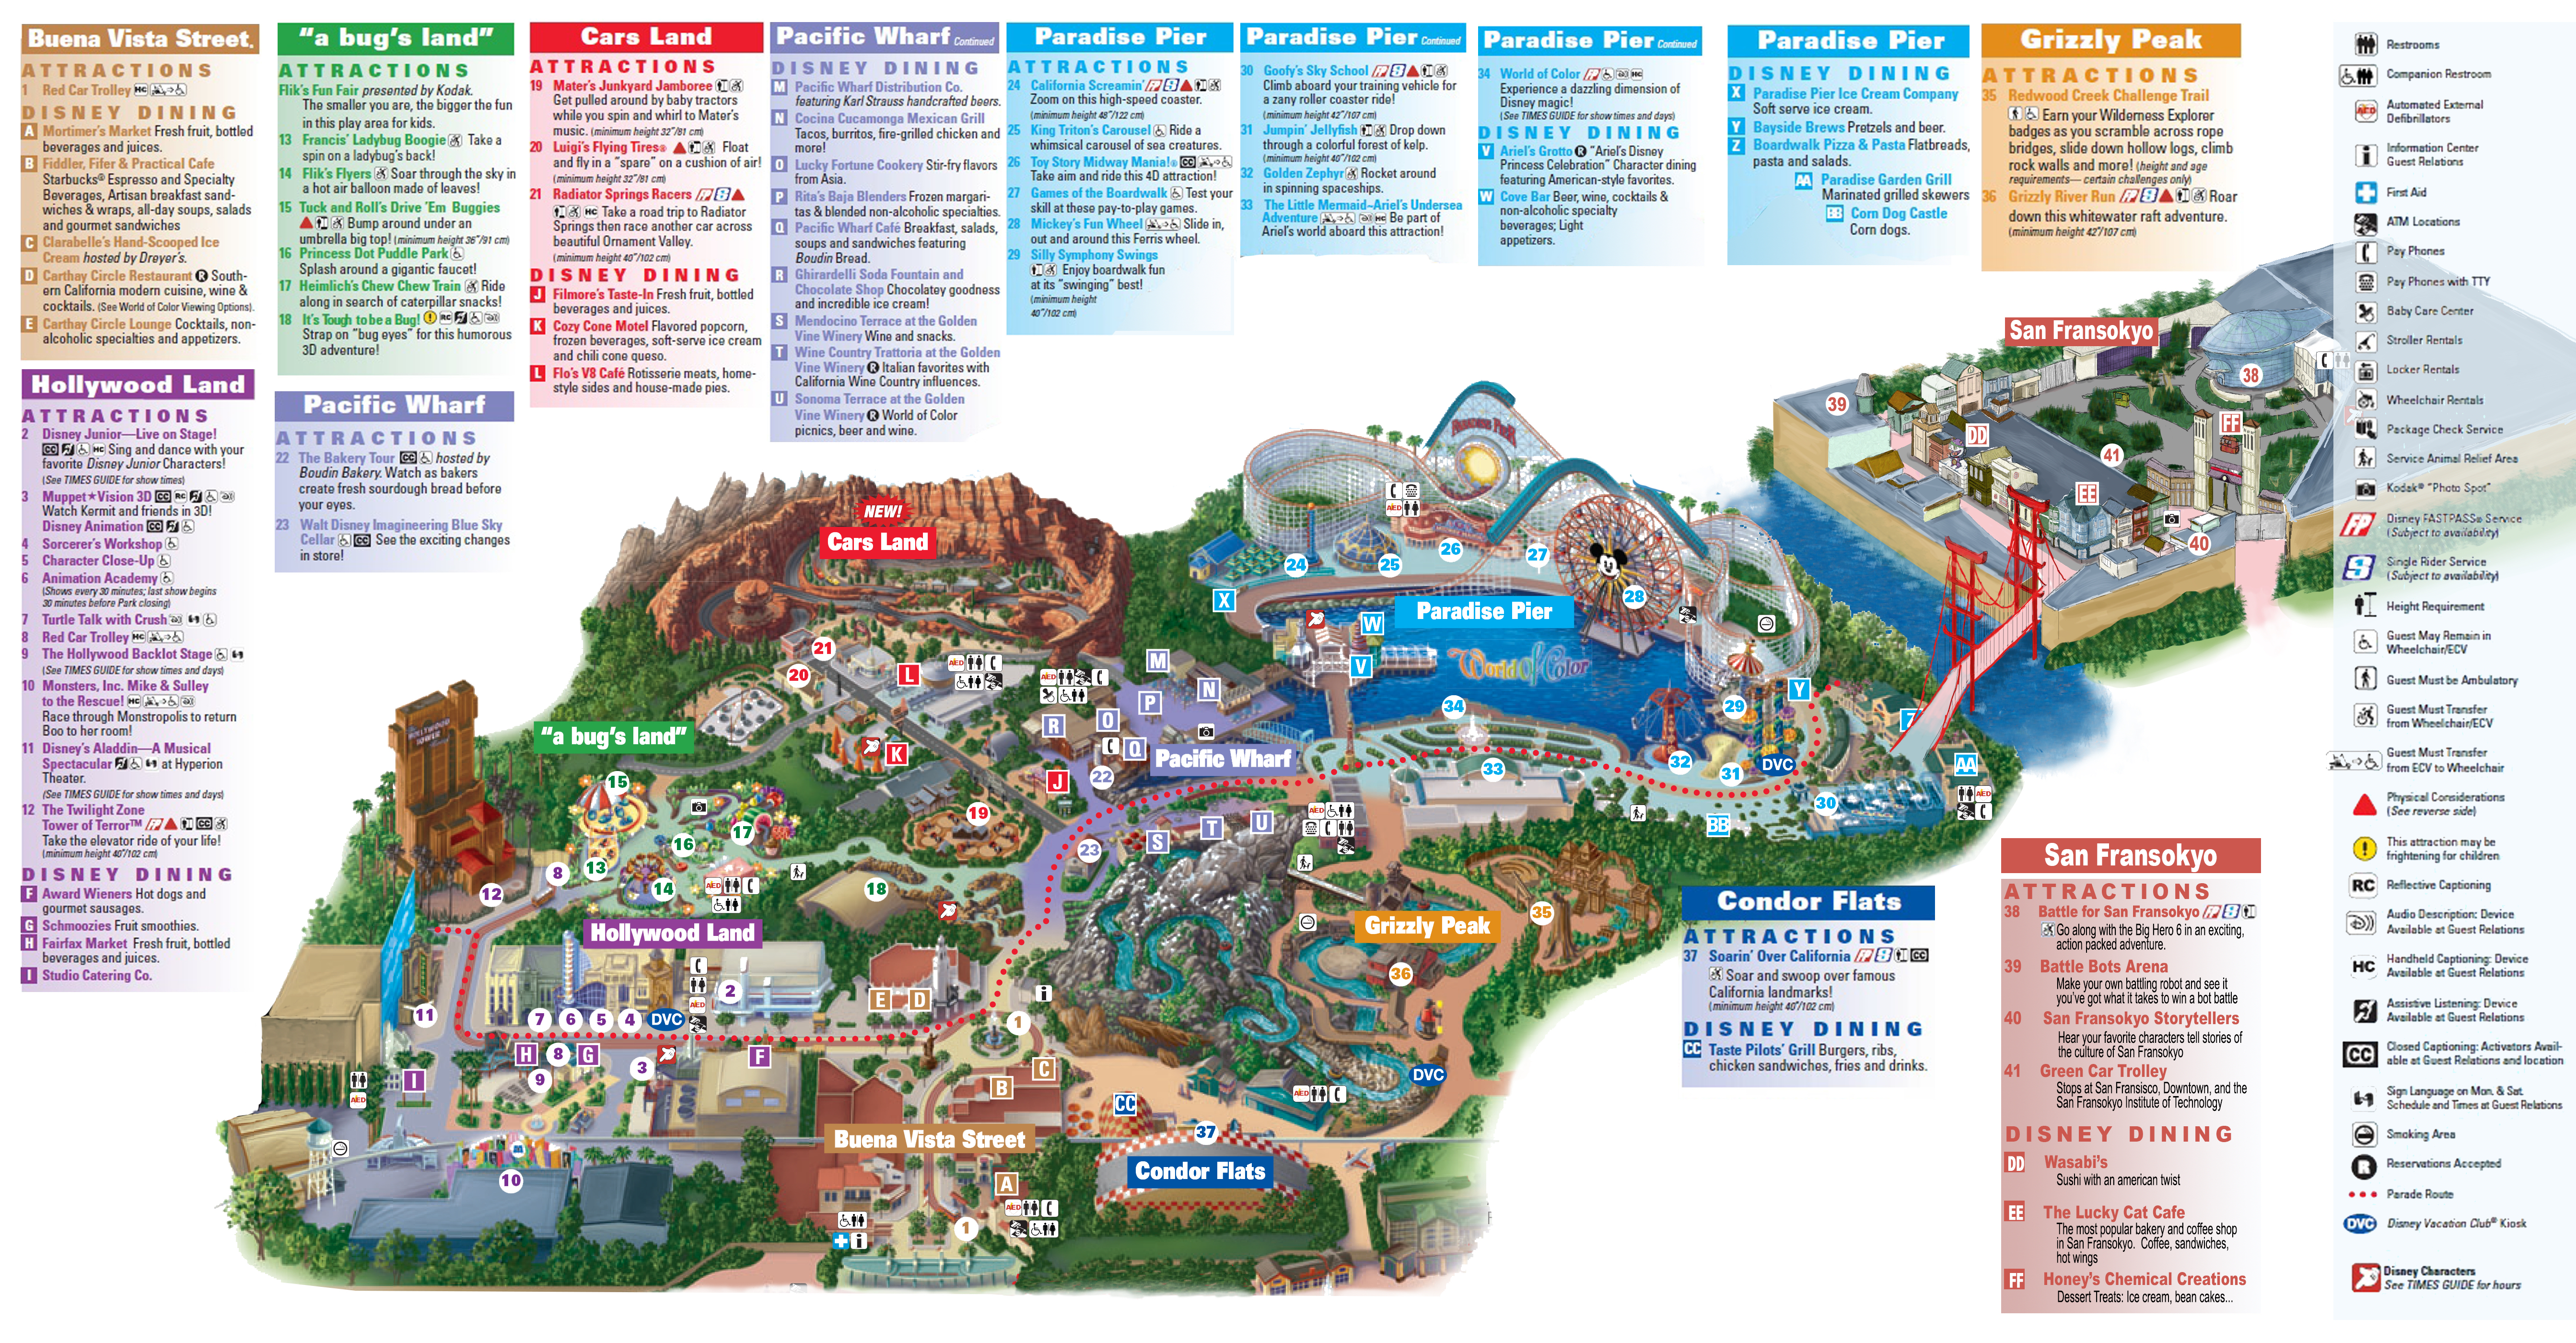 Updated Park Map